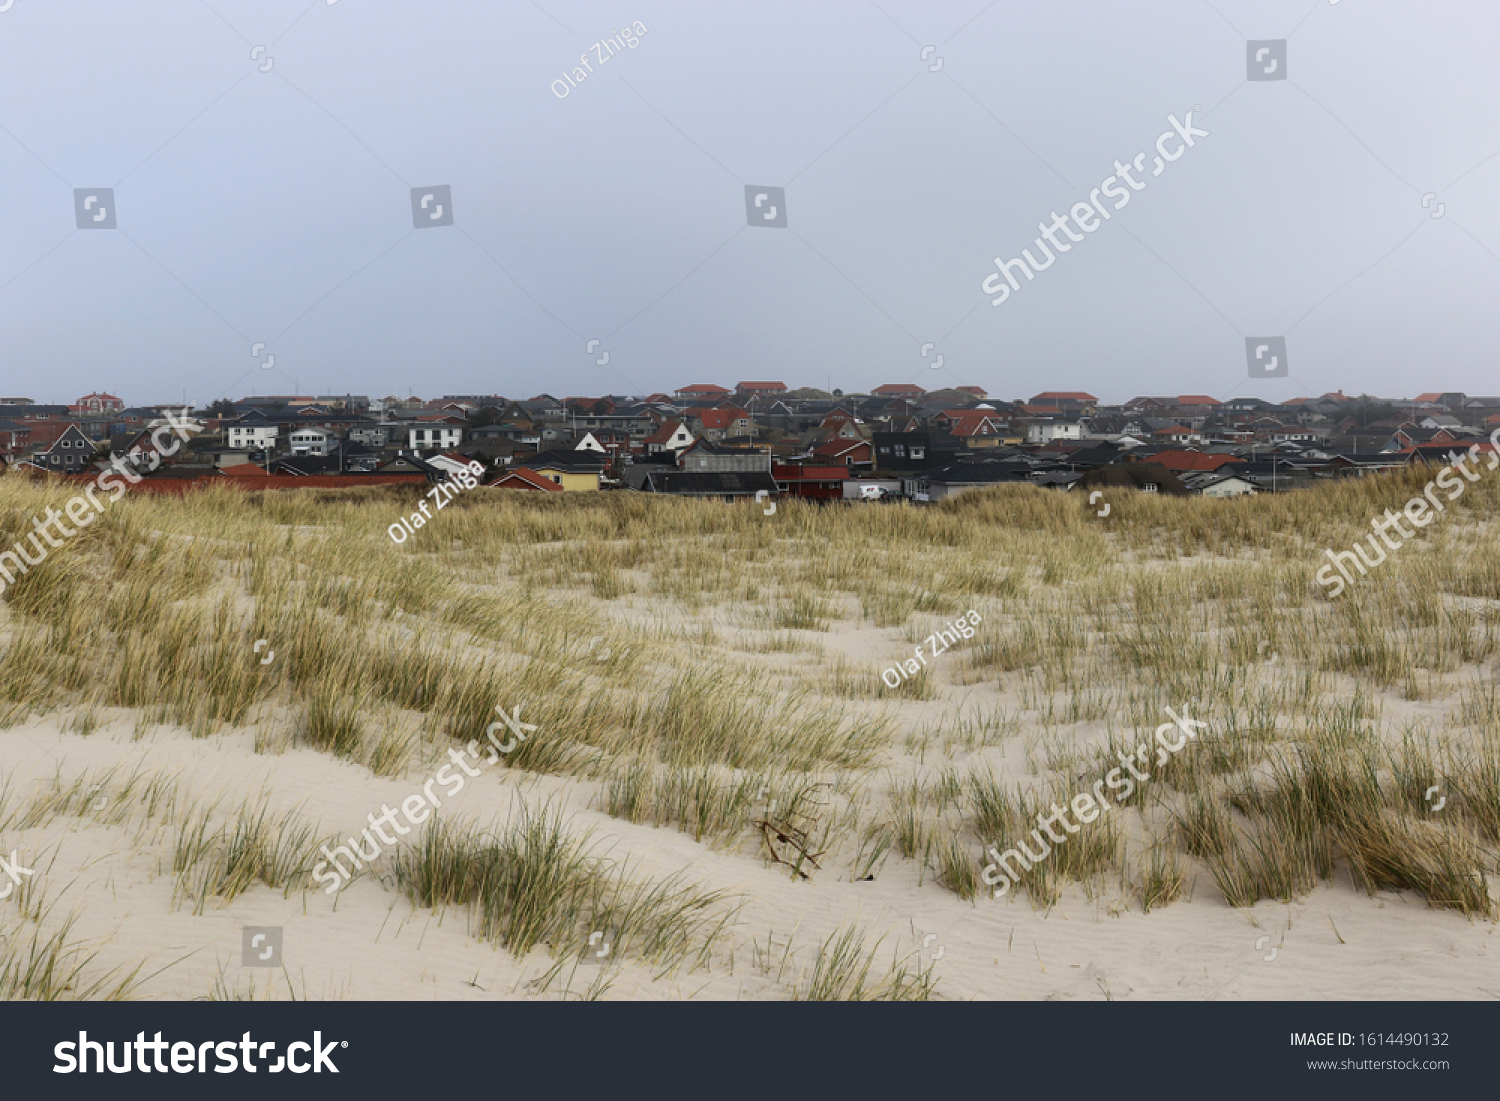 Rack of Danish summer houses appear sinking between  the cold skies and wild windy grass #1614490132